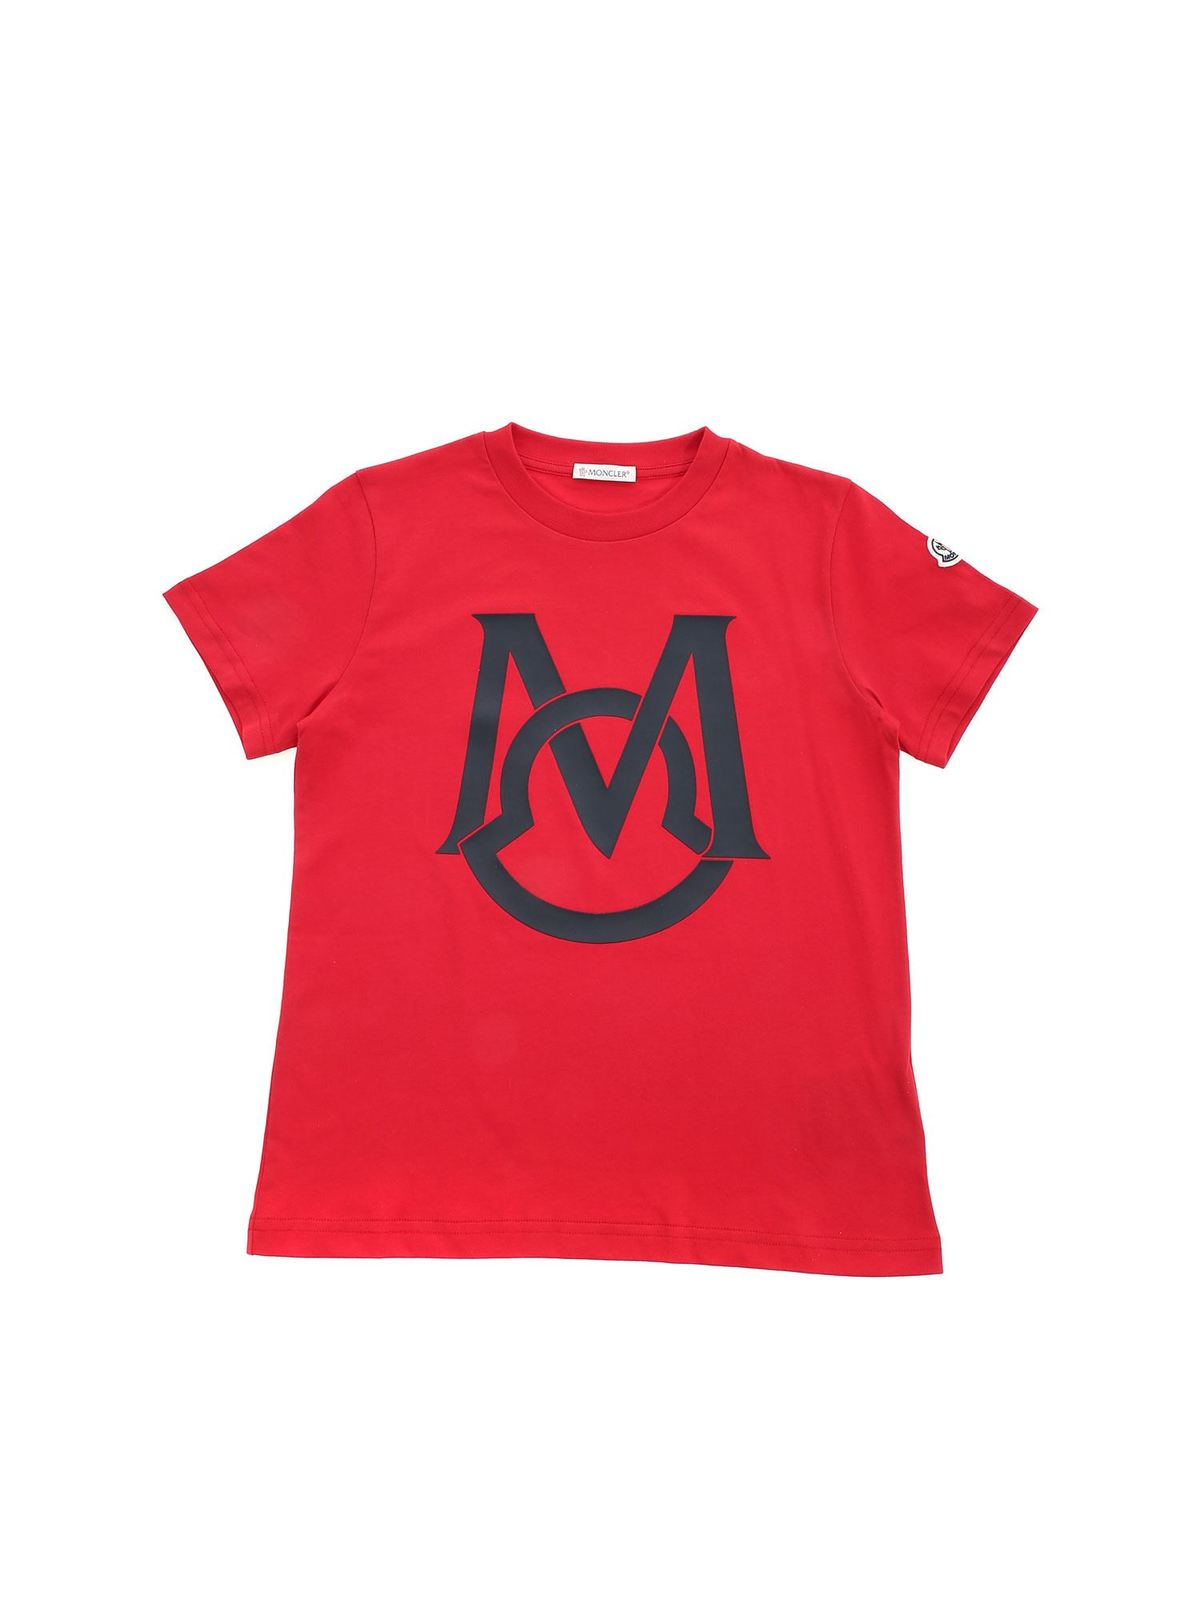 MONCLER JR M T-SHIRT IN RED